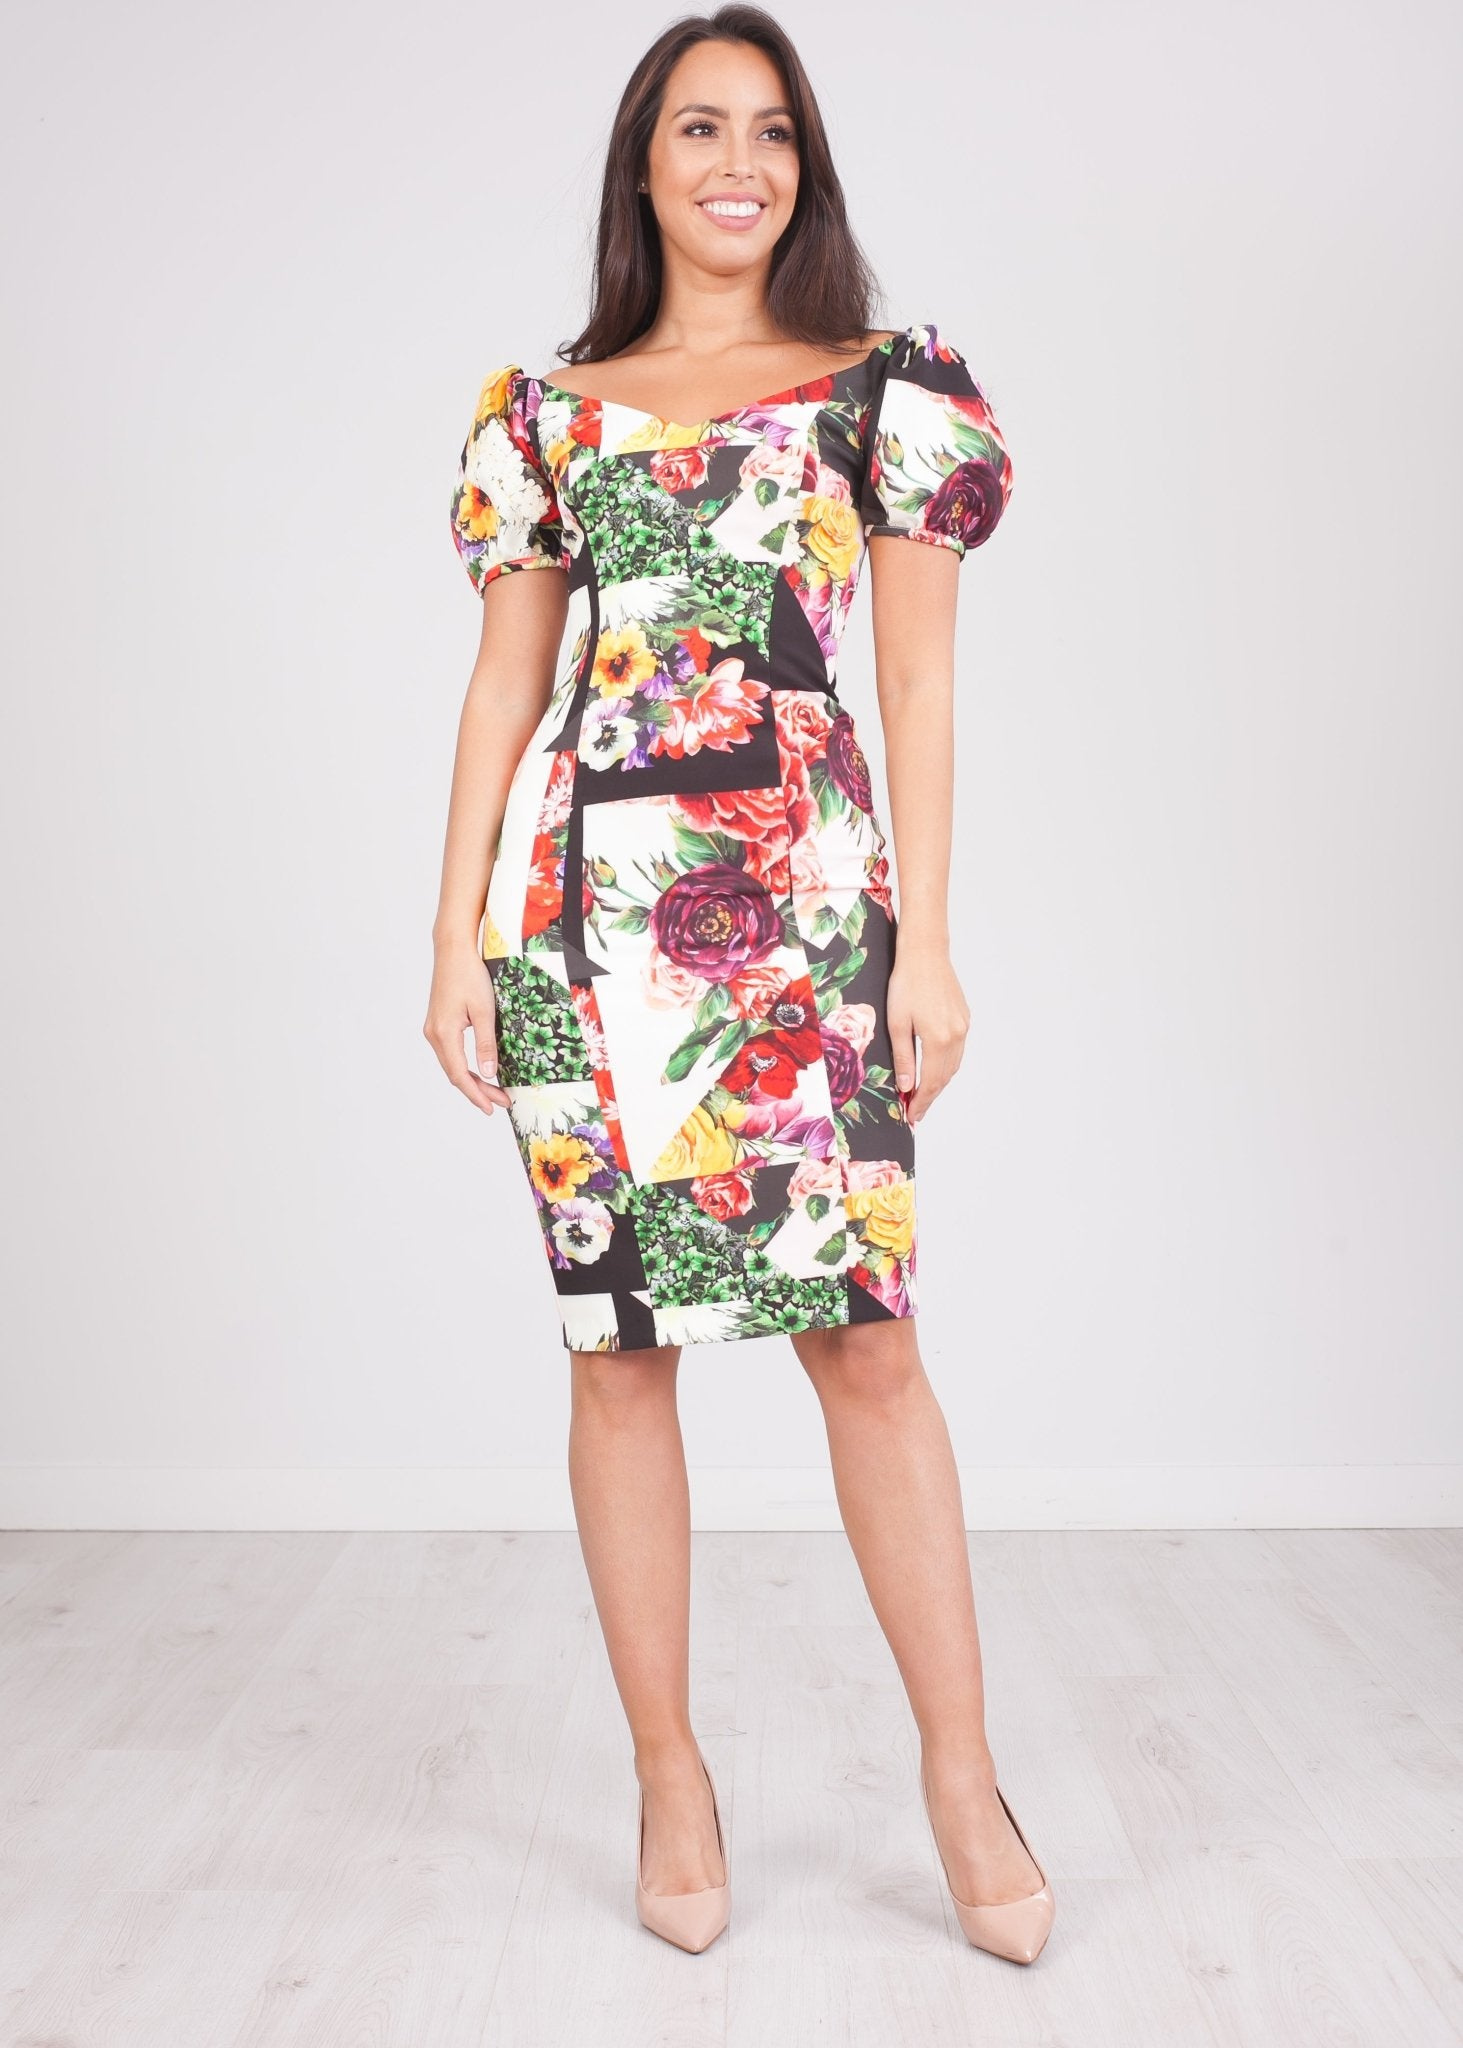 Alana Floral Bardot Dress - The Walk in Wardrobe